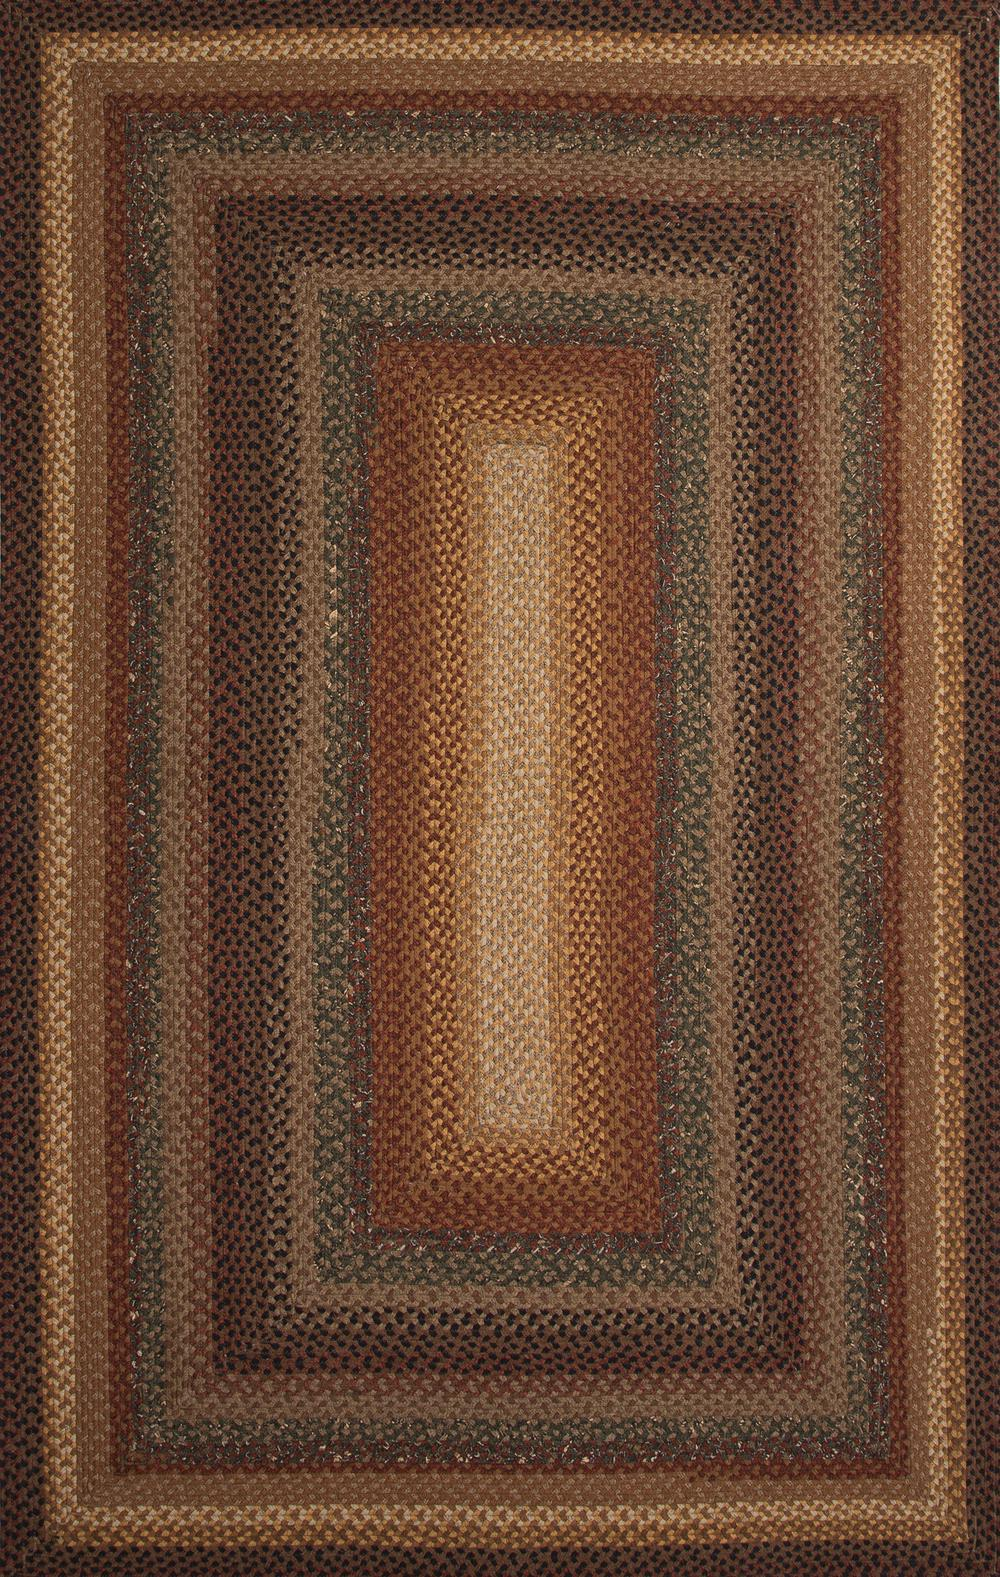 Jaipur Cotton Braided Rugs Peppercorn Taupe Red Cbr03 Area